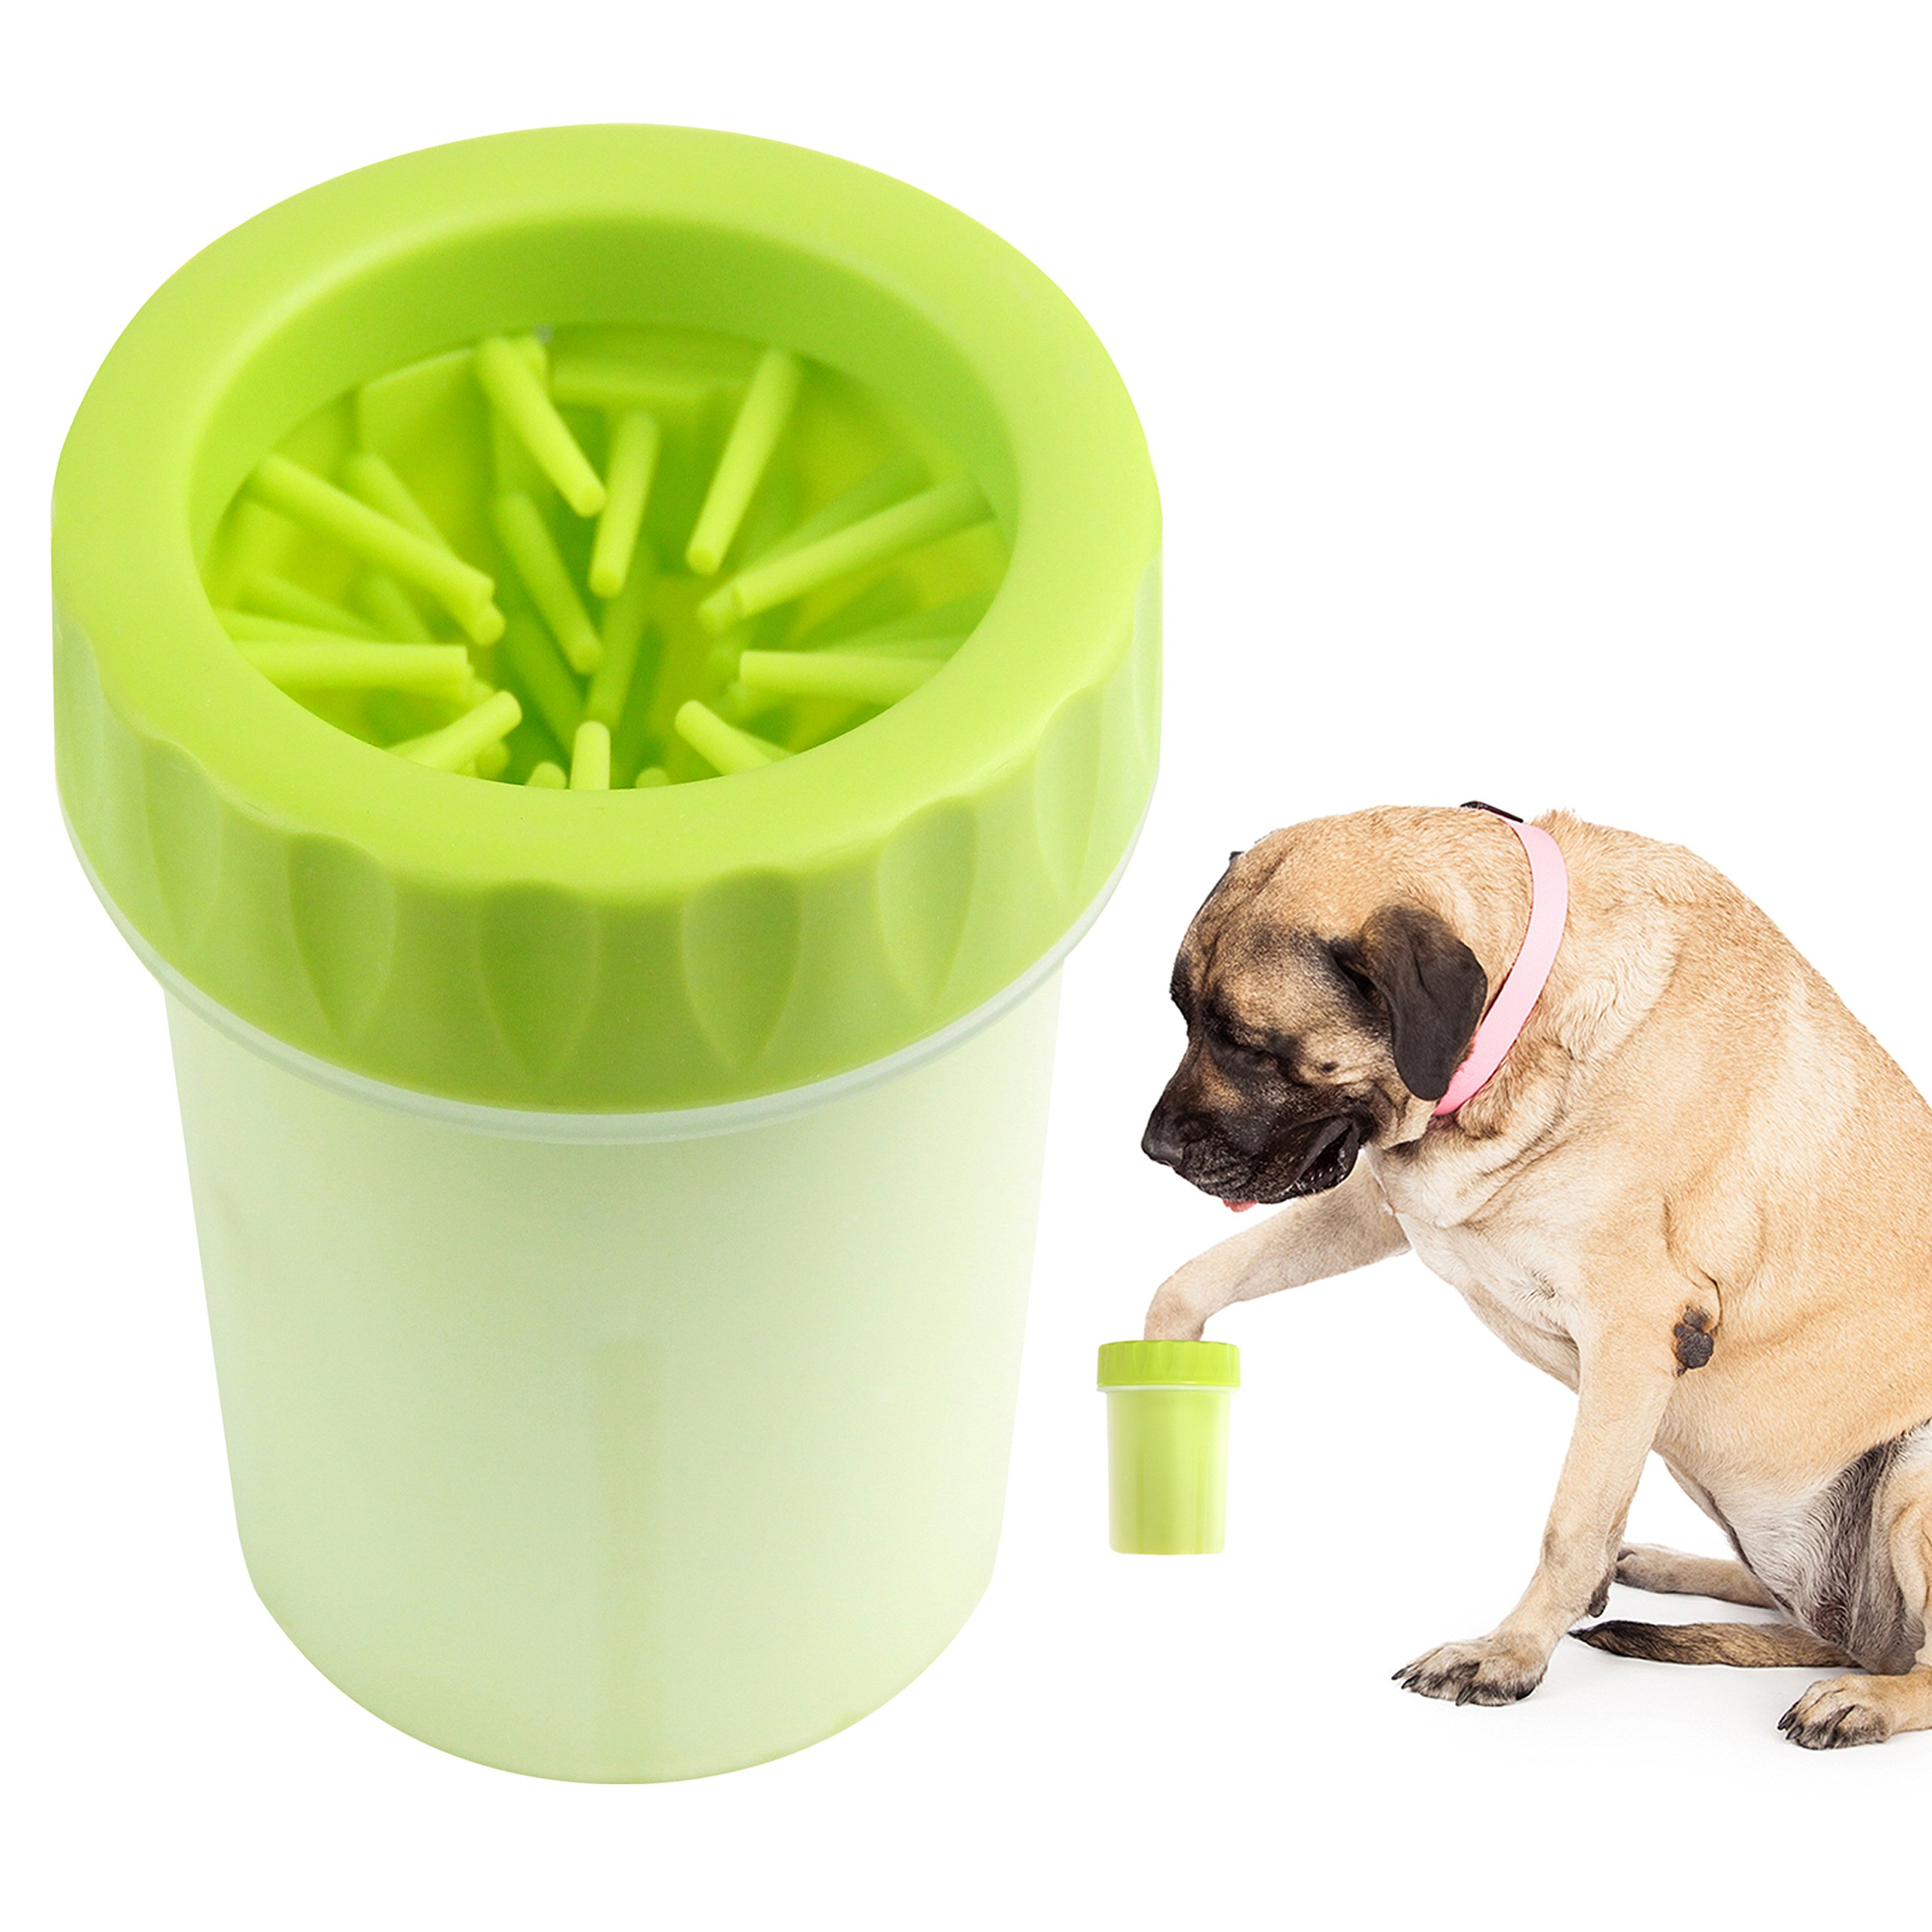 Paw Legend Portable Dog Paw Washer - Pet Paw Cleaner for Dogs,Cats Grooming with Muddy Paws - Comfortable Silicone Dog Feet Cleaner(Green, L)